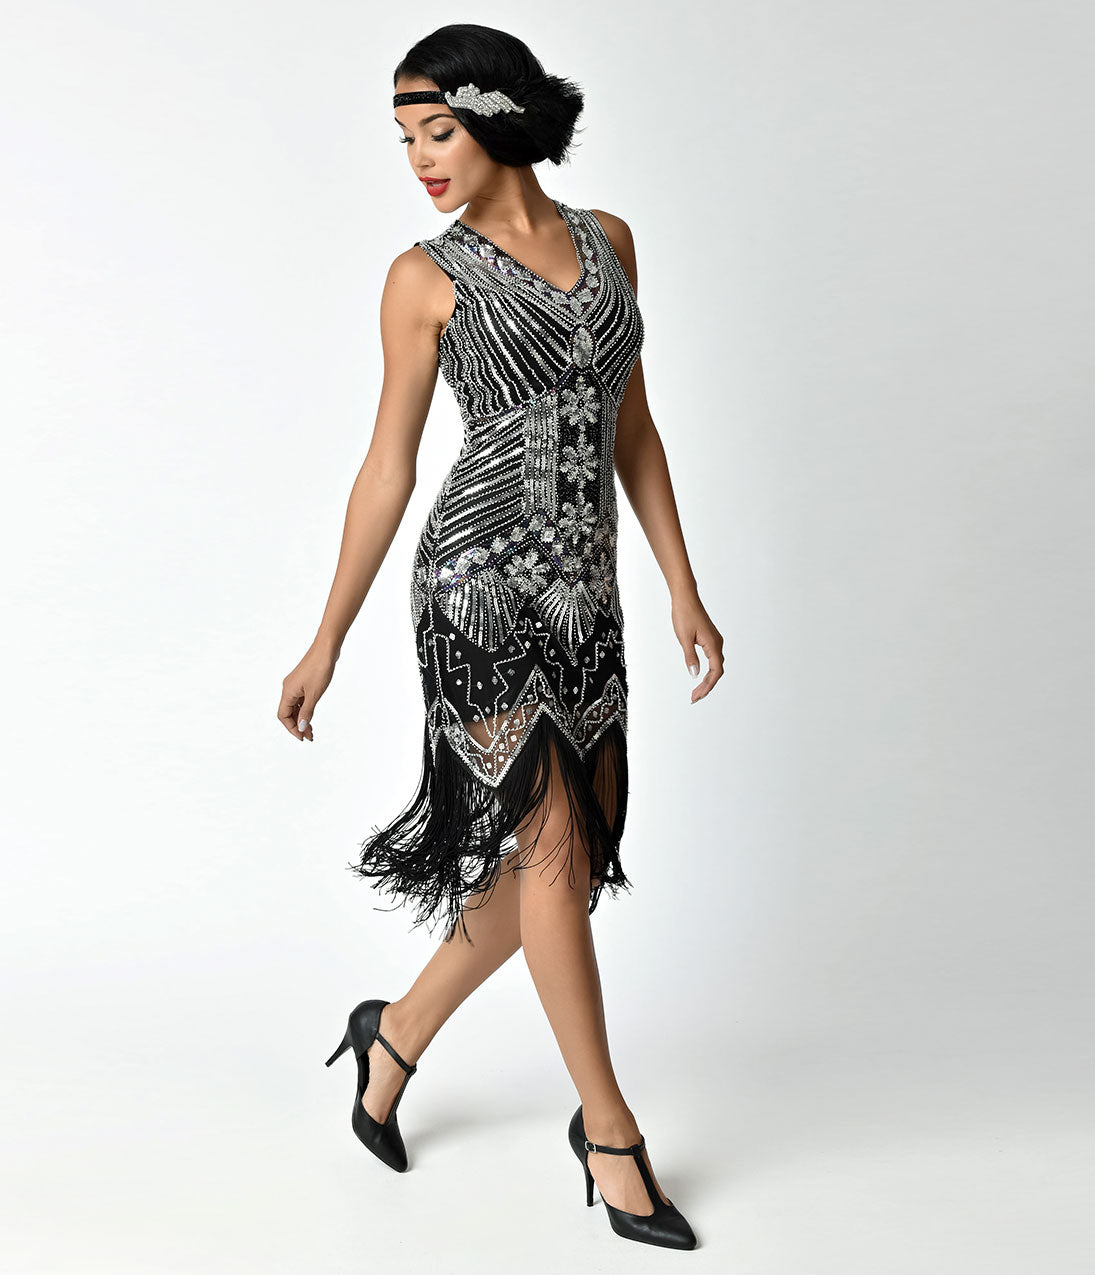 50 Vintage Halloween Costume Ideas Unique Vintage 1920S Deco Silver  Black Veronique Fringe Flapper Dress $98.00 AT vintagedancer.com